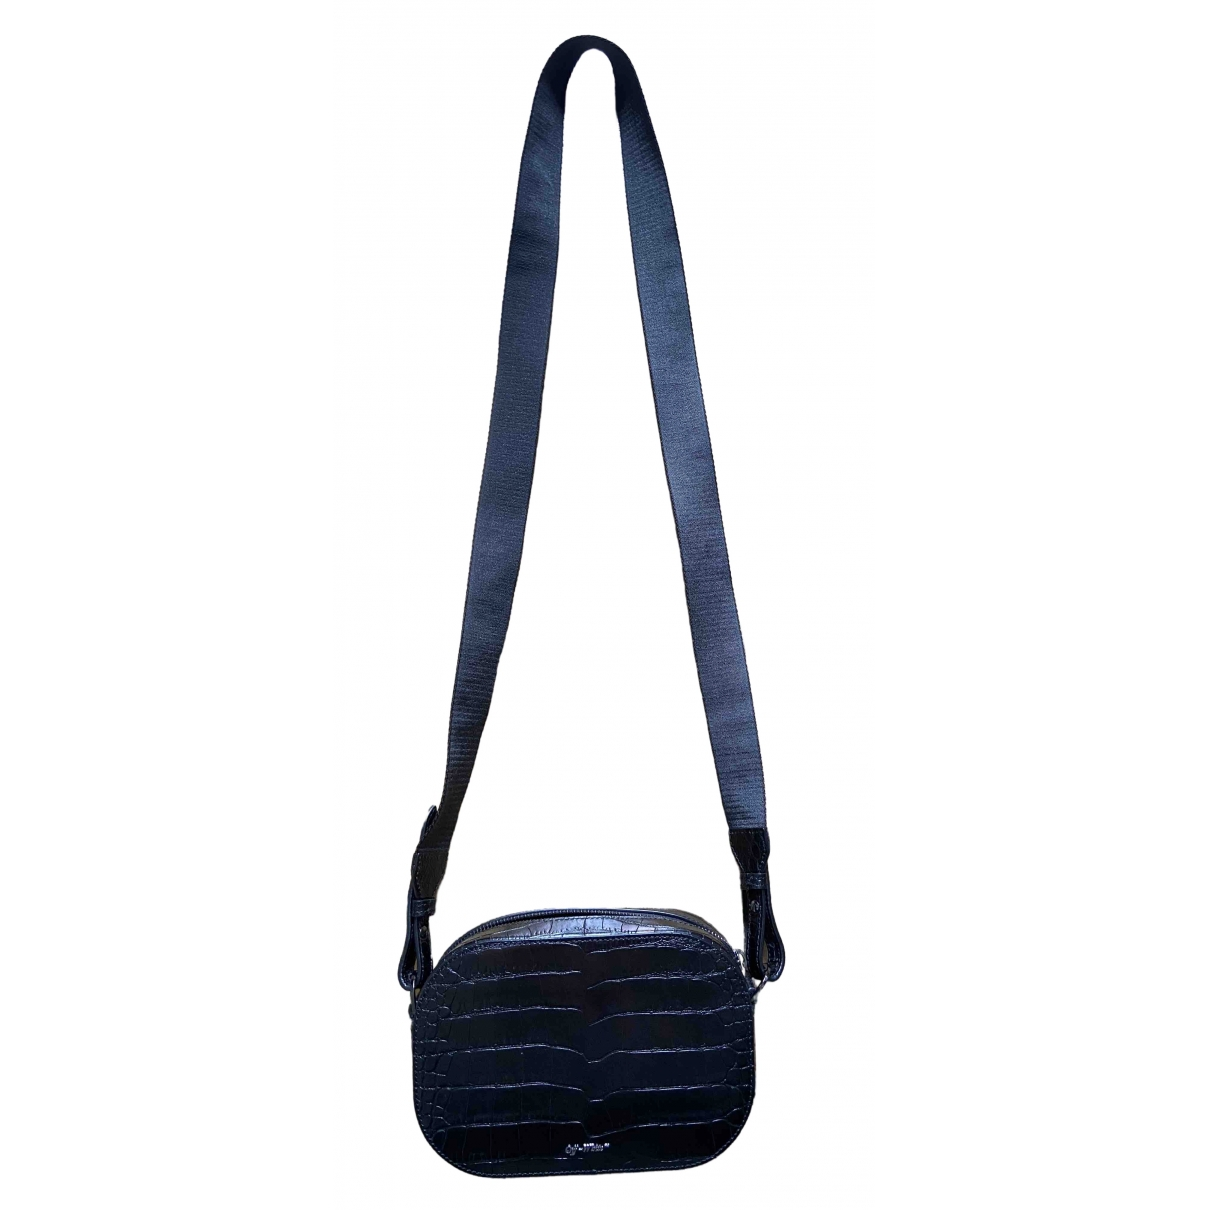 Off-white \N Black Leather handbag for Women \N